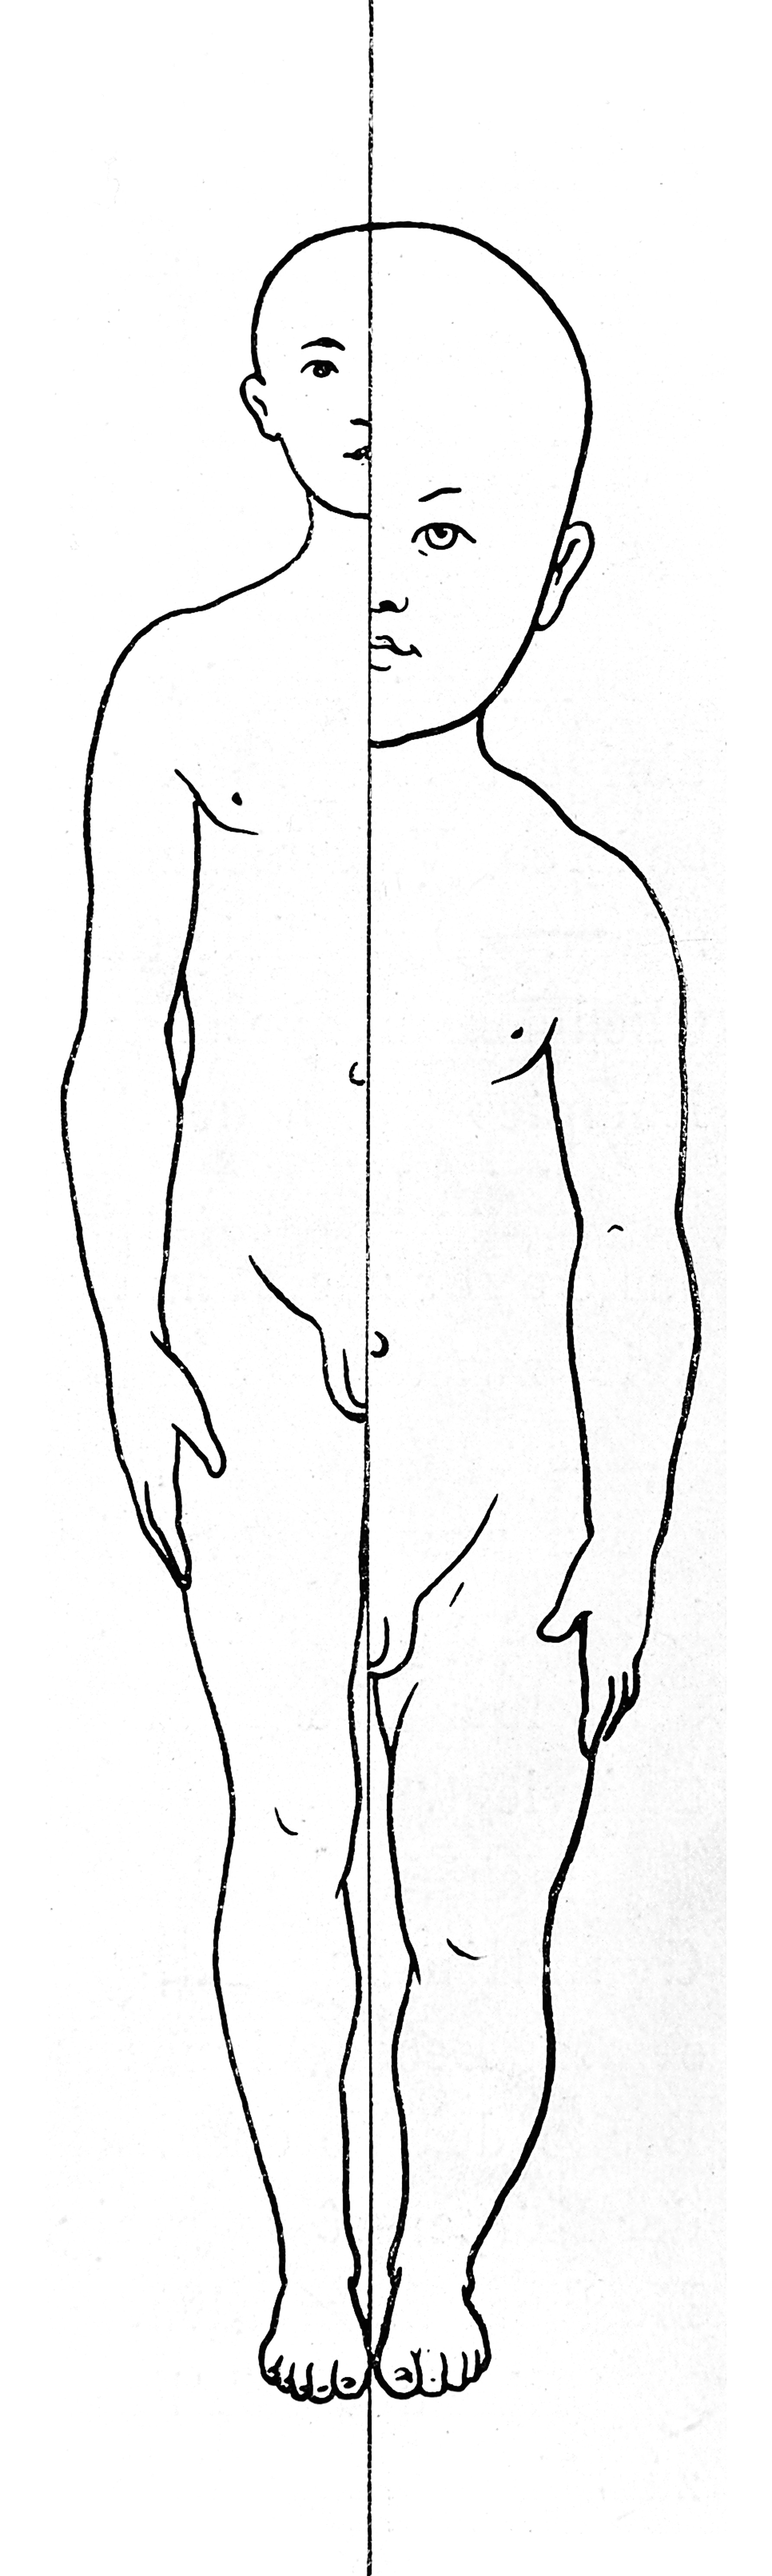 variation of proportion with age